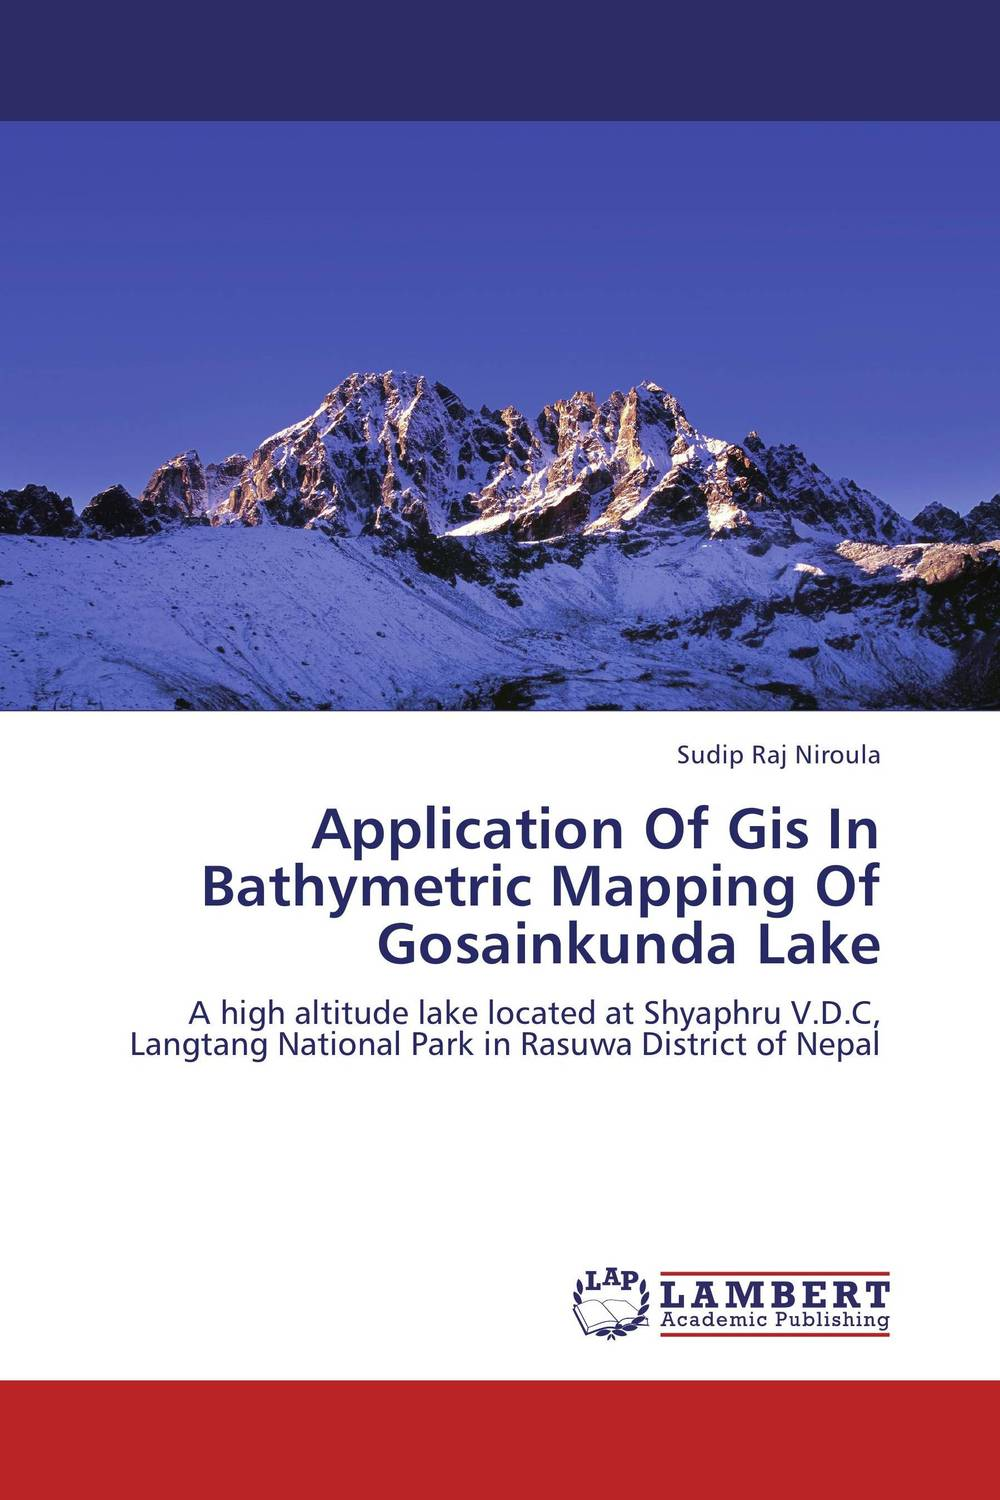 Application Of Gis In Bathymetric Mapping Of Gosainkunda Lake week at the lake